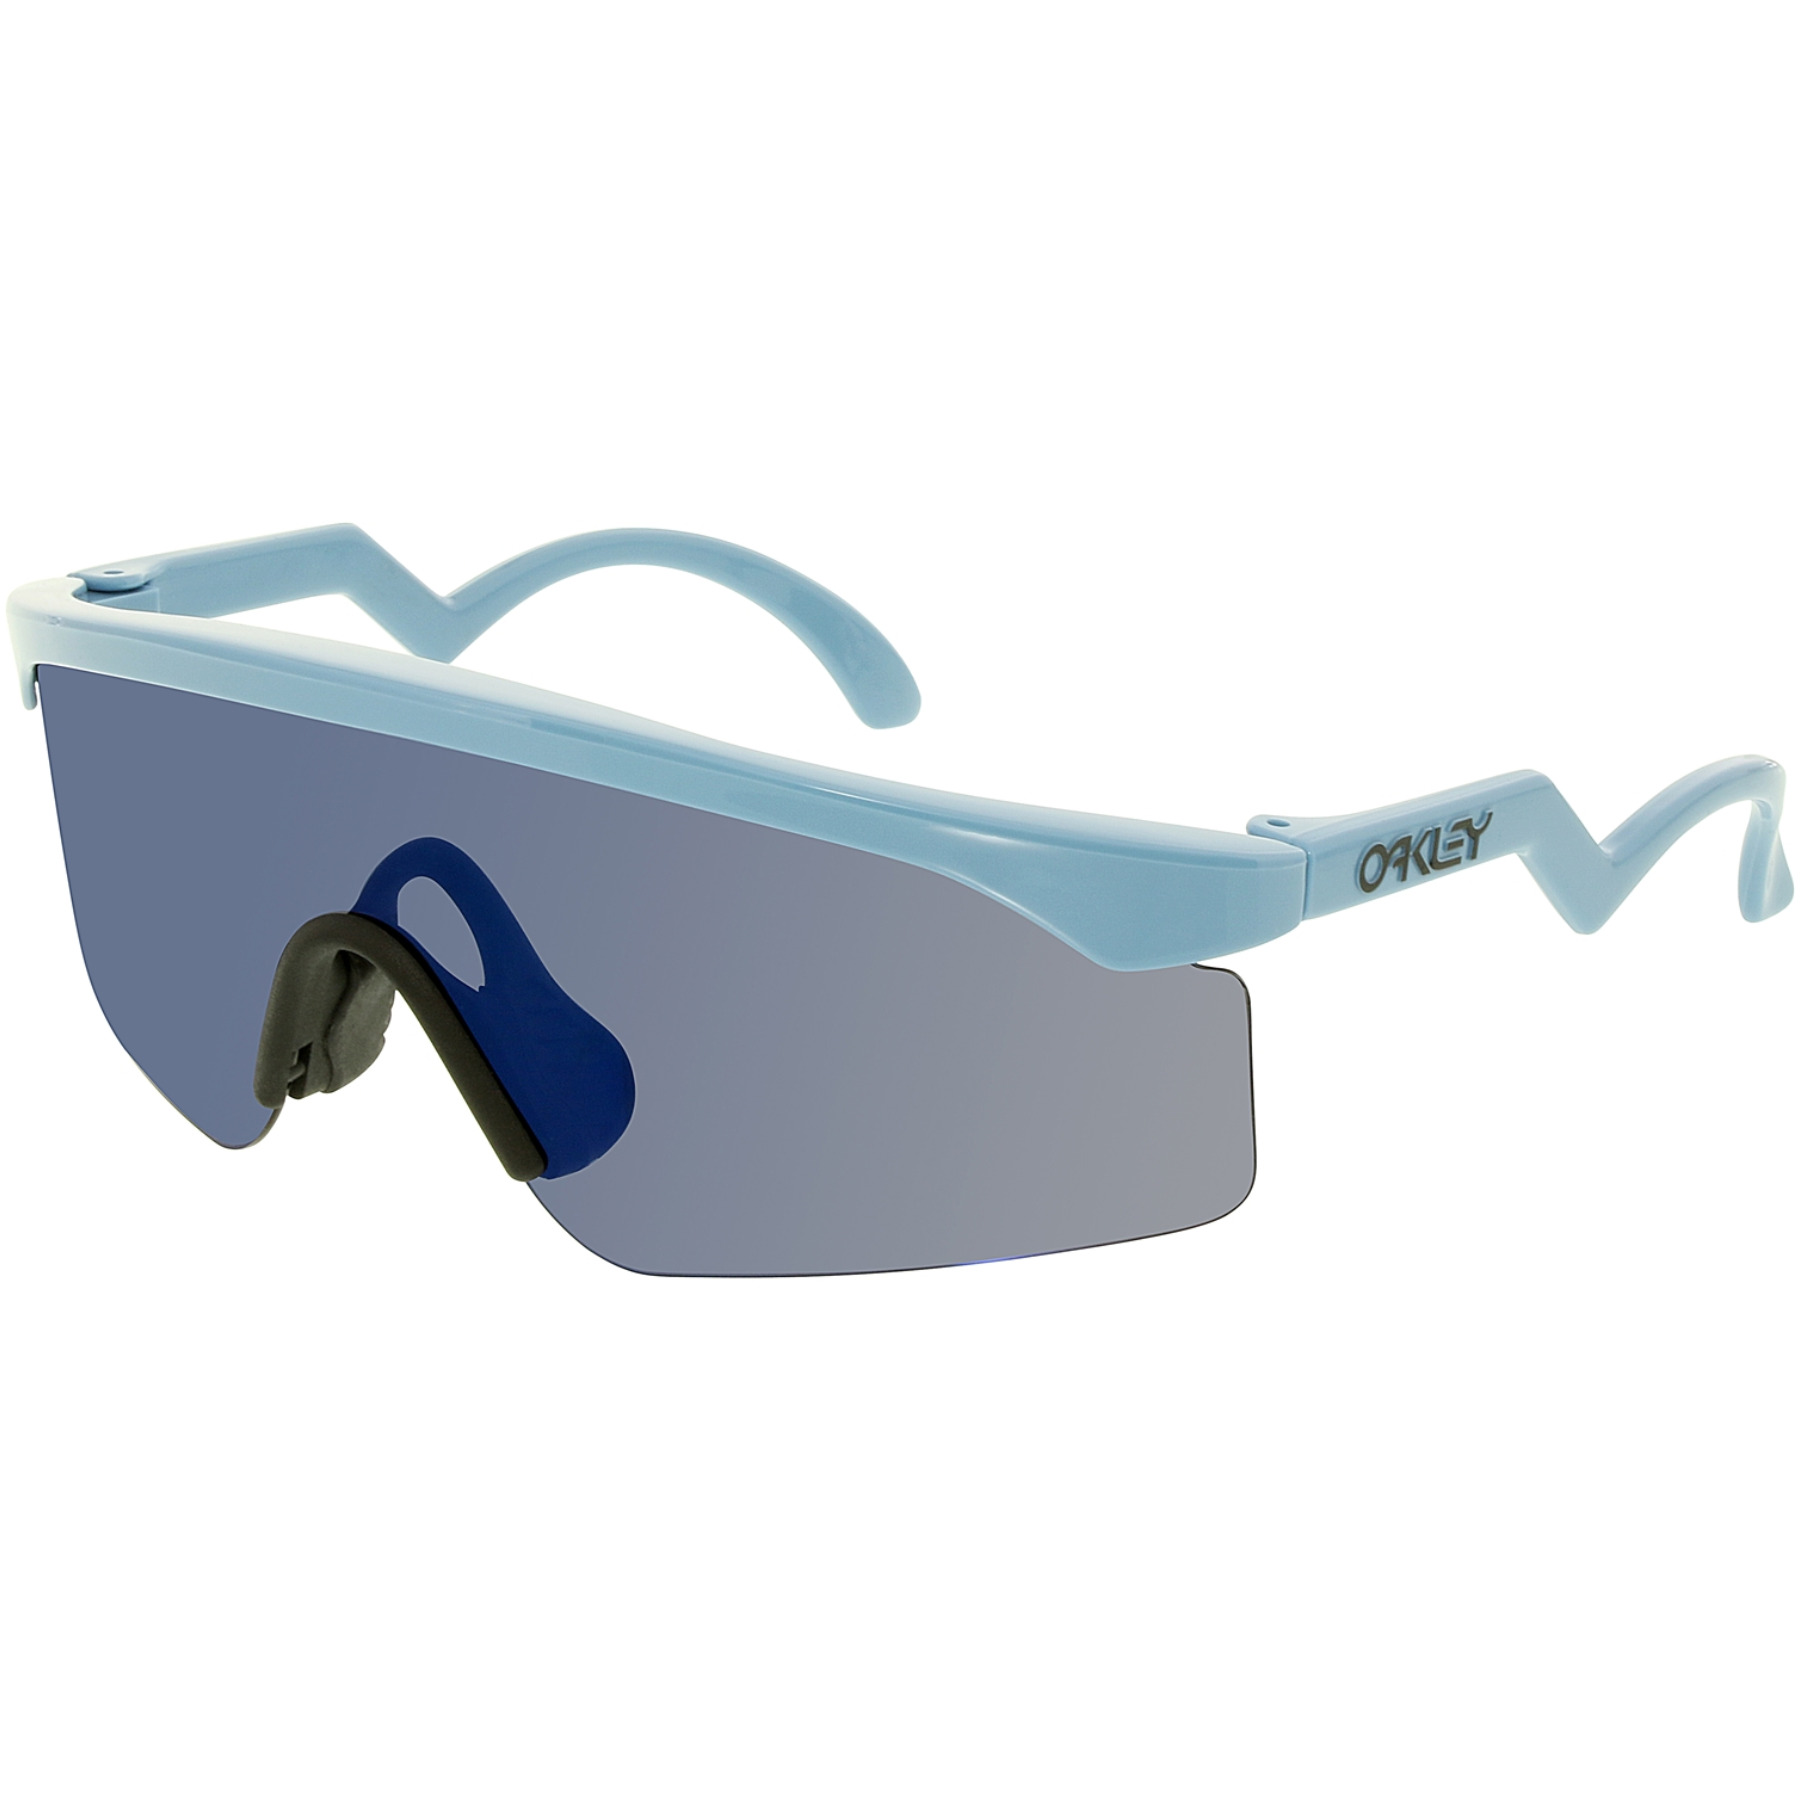 Oakley Men's Heritage Oo9140-16 Blue Shield Sunglasses OO9140-16